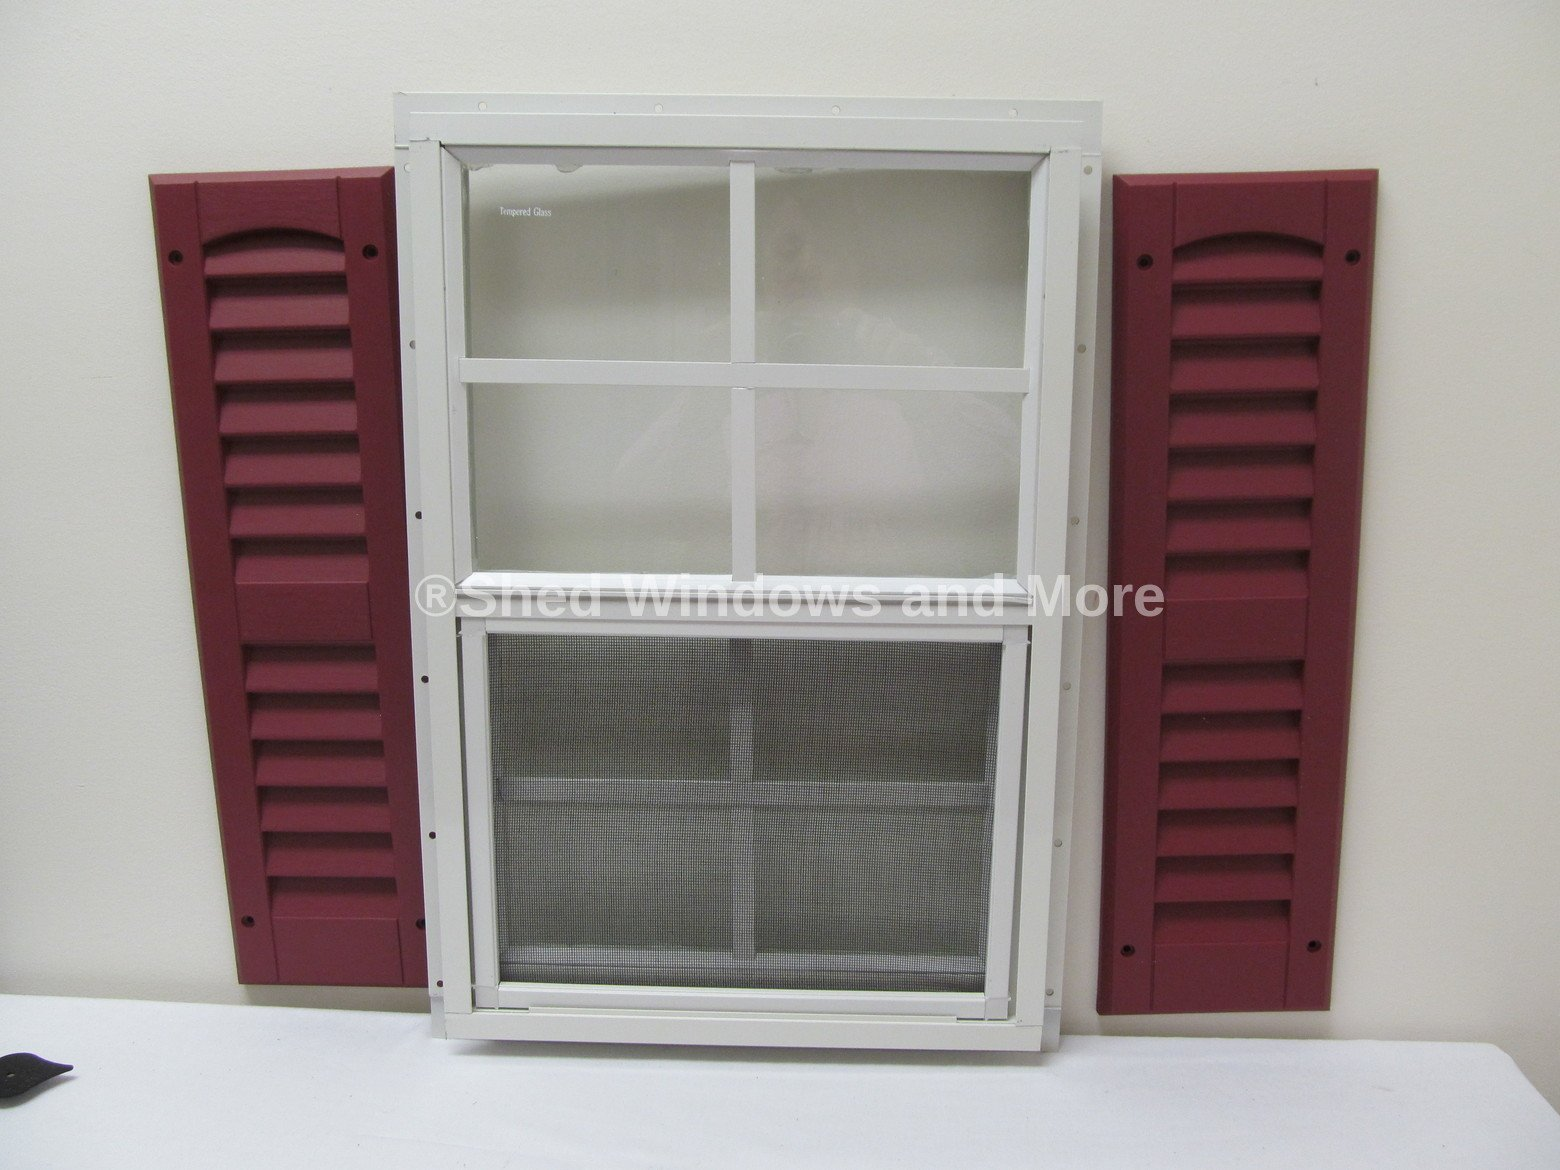 Shed Window with Shutters 14 X 21 White J-Channel Safety Glass Playhouse Window (Black) by Shed Windows and More (Image #1)